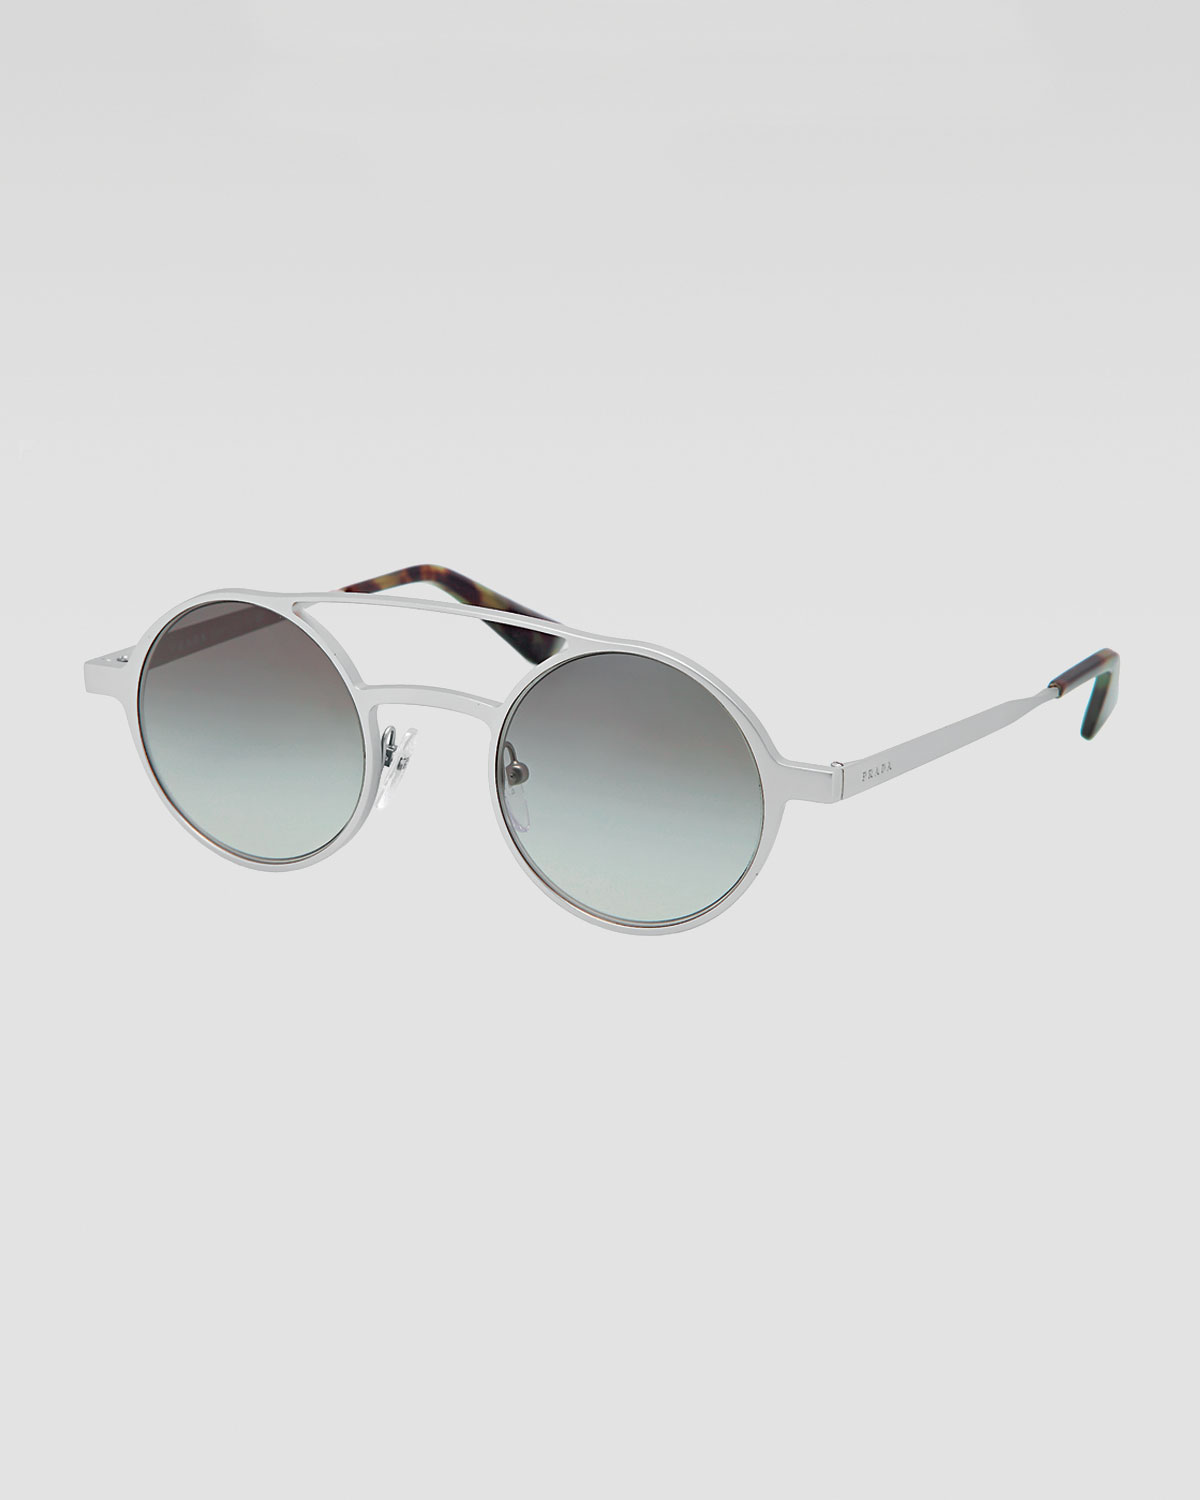 9f85806d82d Lyst - Prada Round Keyhole Sunglasses in Gray for Men